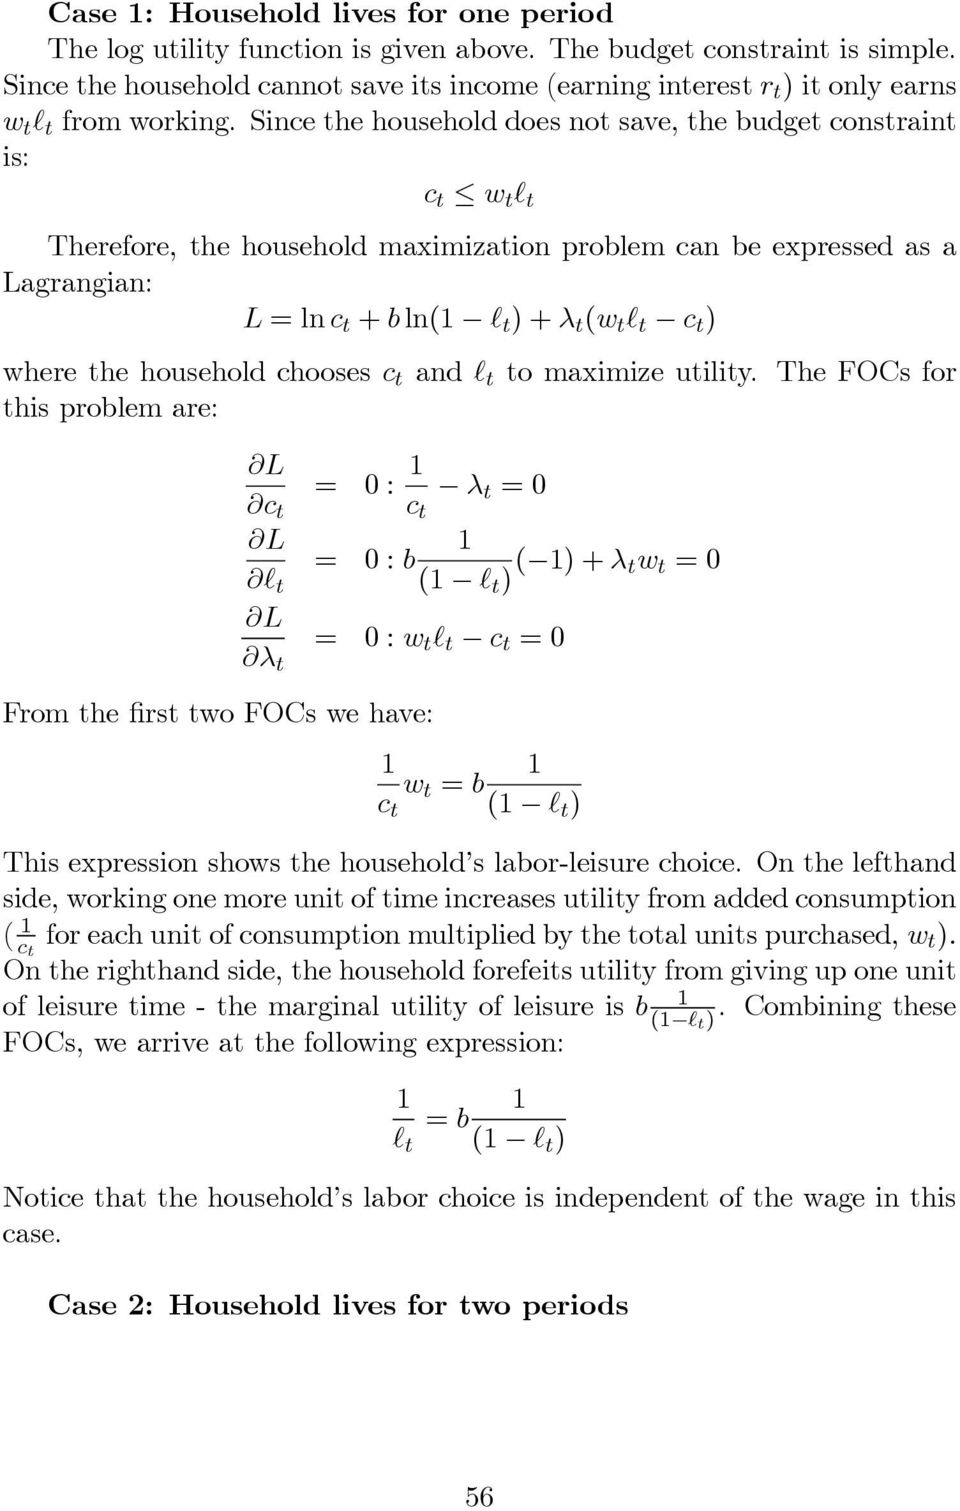 Since the household does not save, the budget constraint is: c t w t t Therefore, the household maximization problem can be expressed as a Lagrangian: L =lnc t + b ln( t )+λ t (w t t c t ) where the